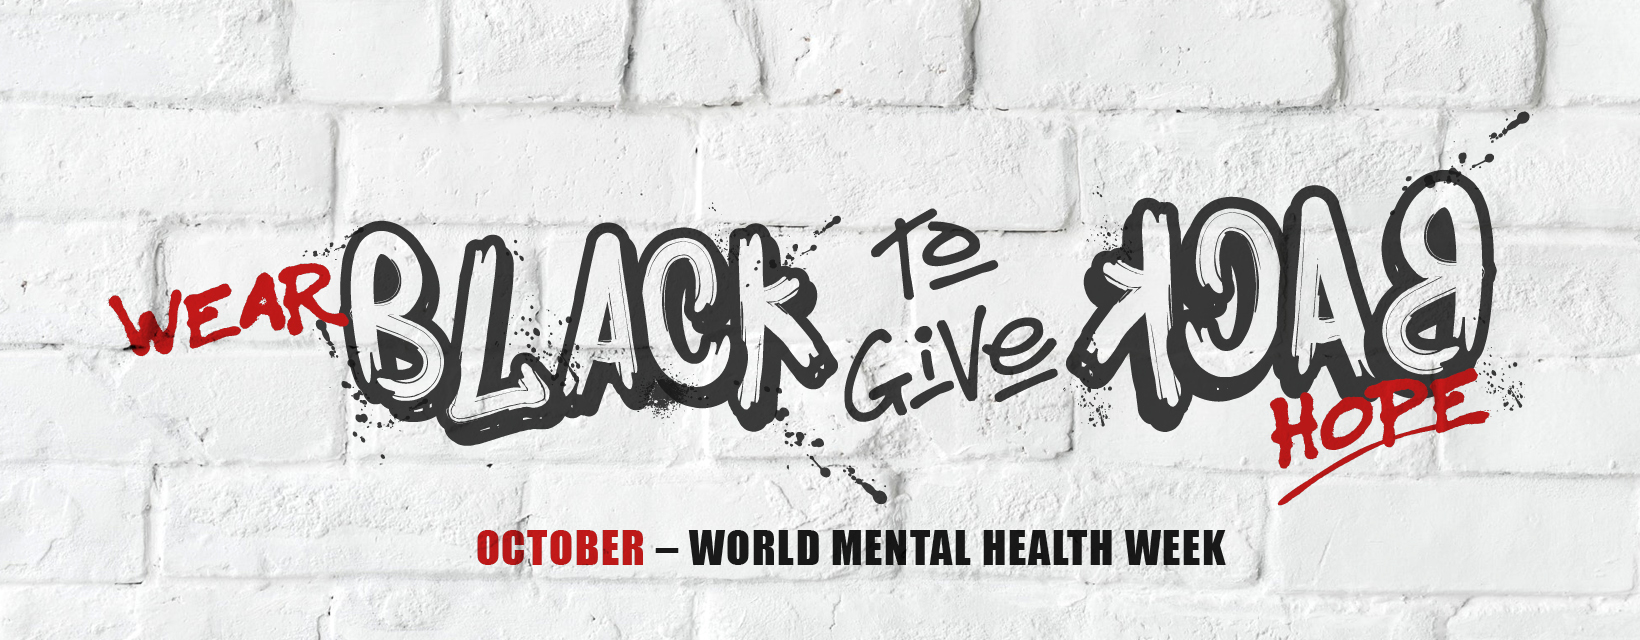 Wear Black to Give Back Mental Health Week